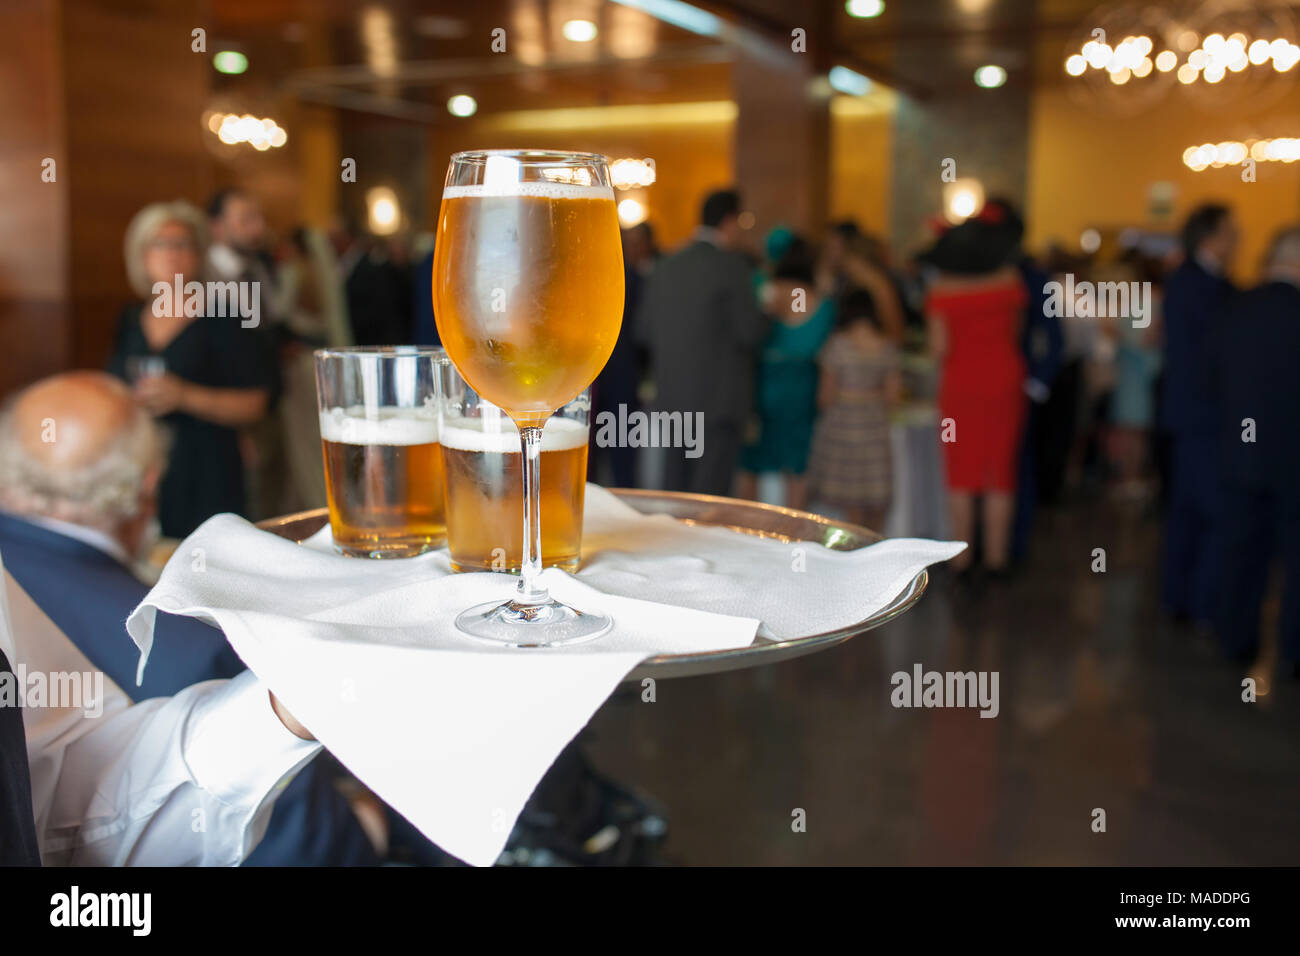 People drinking beer at Welcome cocktail party with formal wear. Waiter holds a tray with glasses and glass chalice - Stock Image